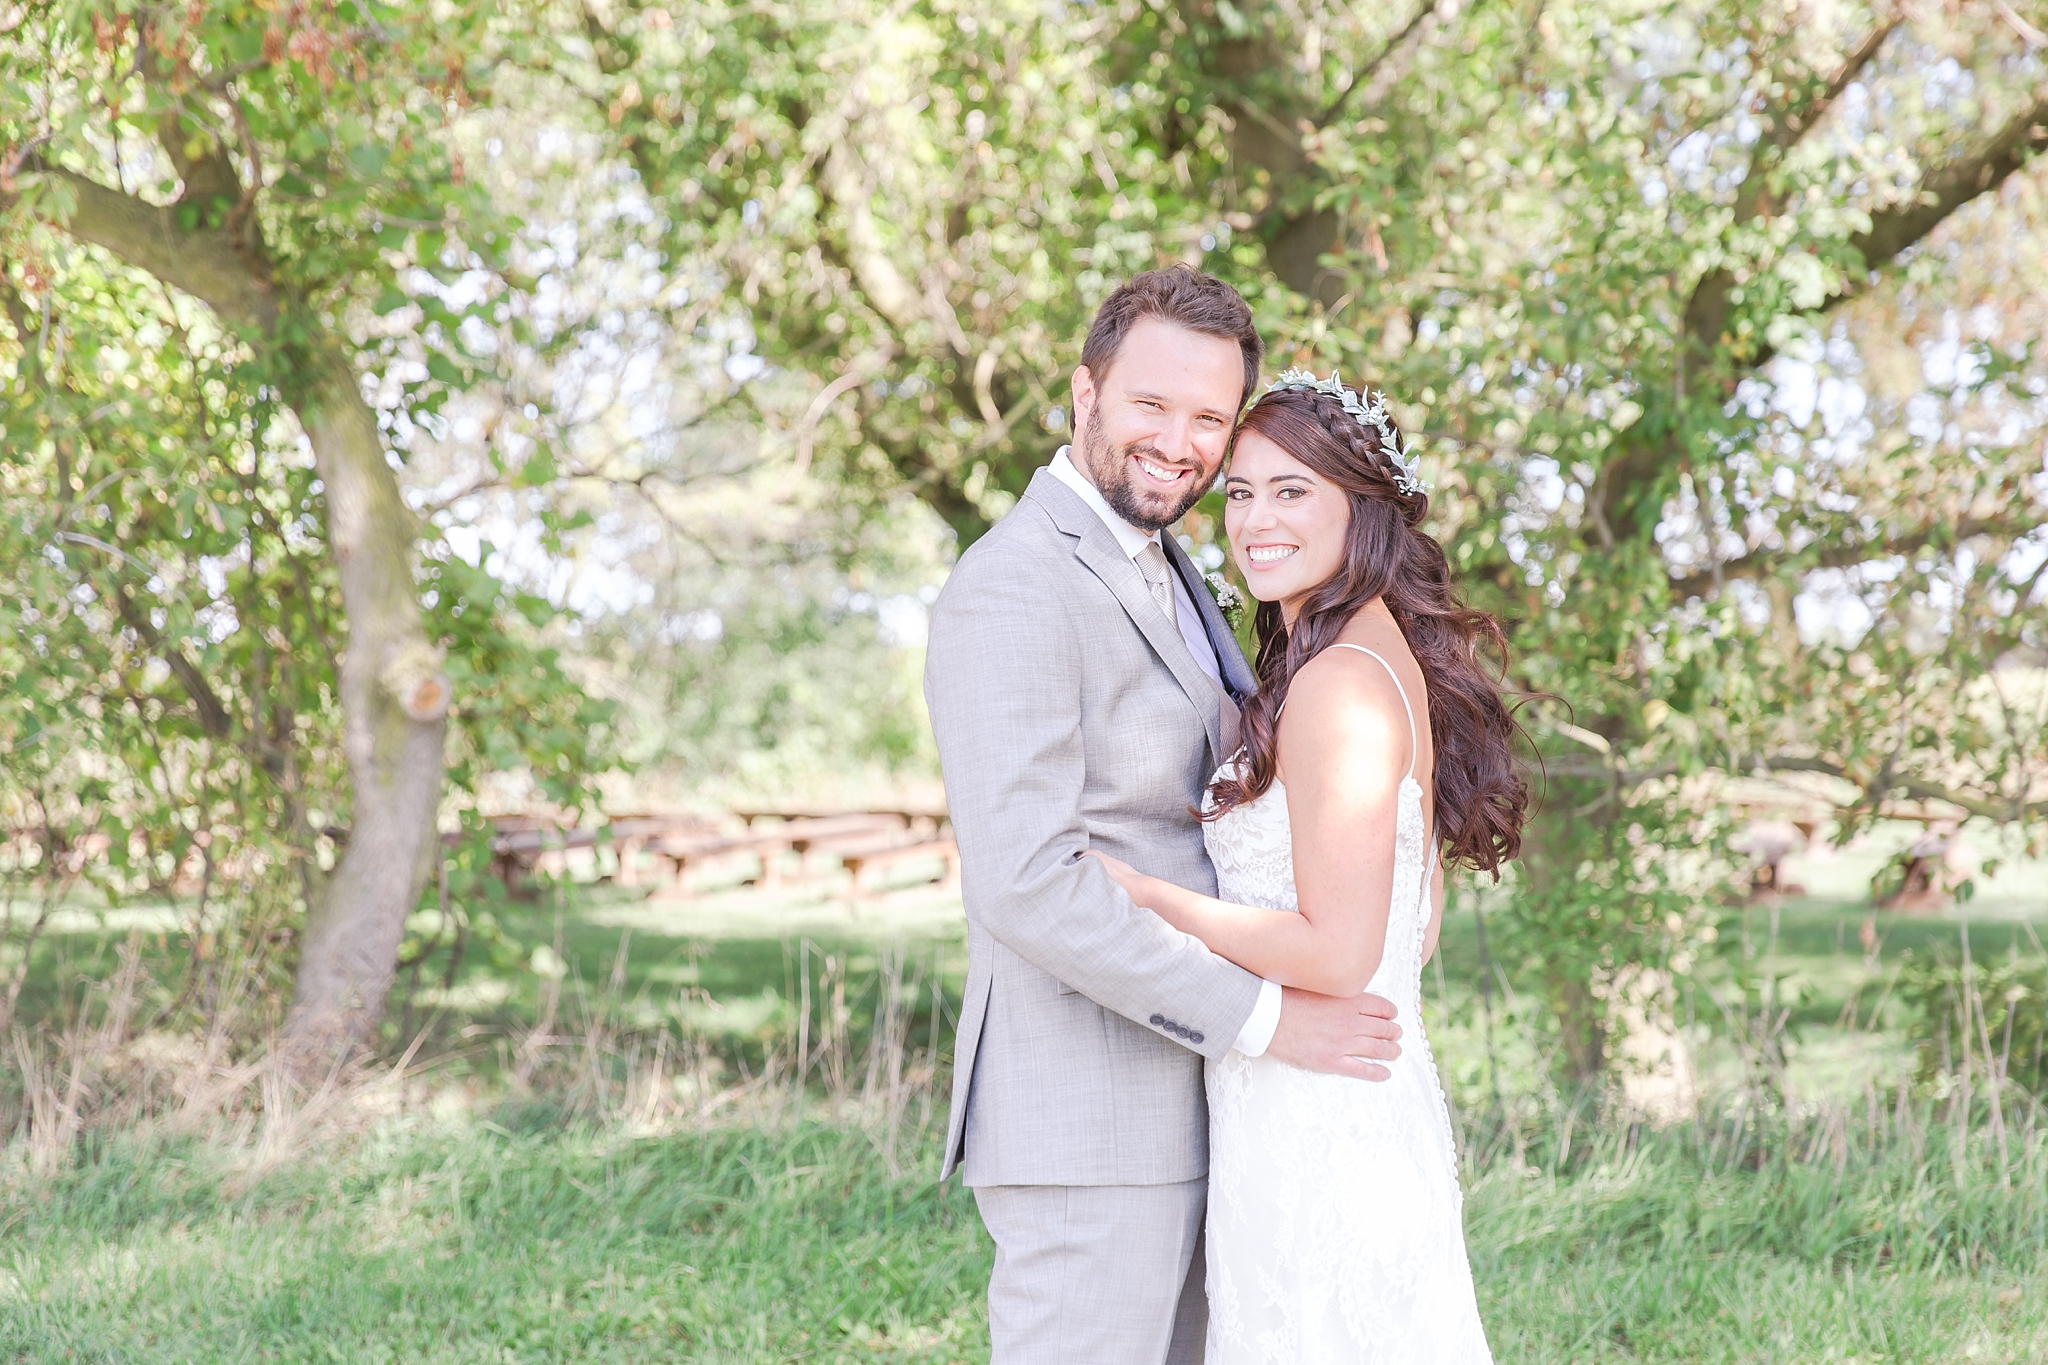 natural-rustic-wedding-photos-at-frutig-farms-the-valley-in-ann-arbor-michigan-by-courtney-carolyn-photography_0022.jpg